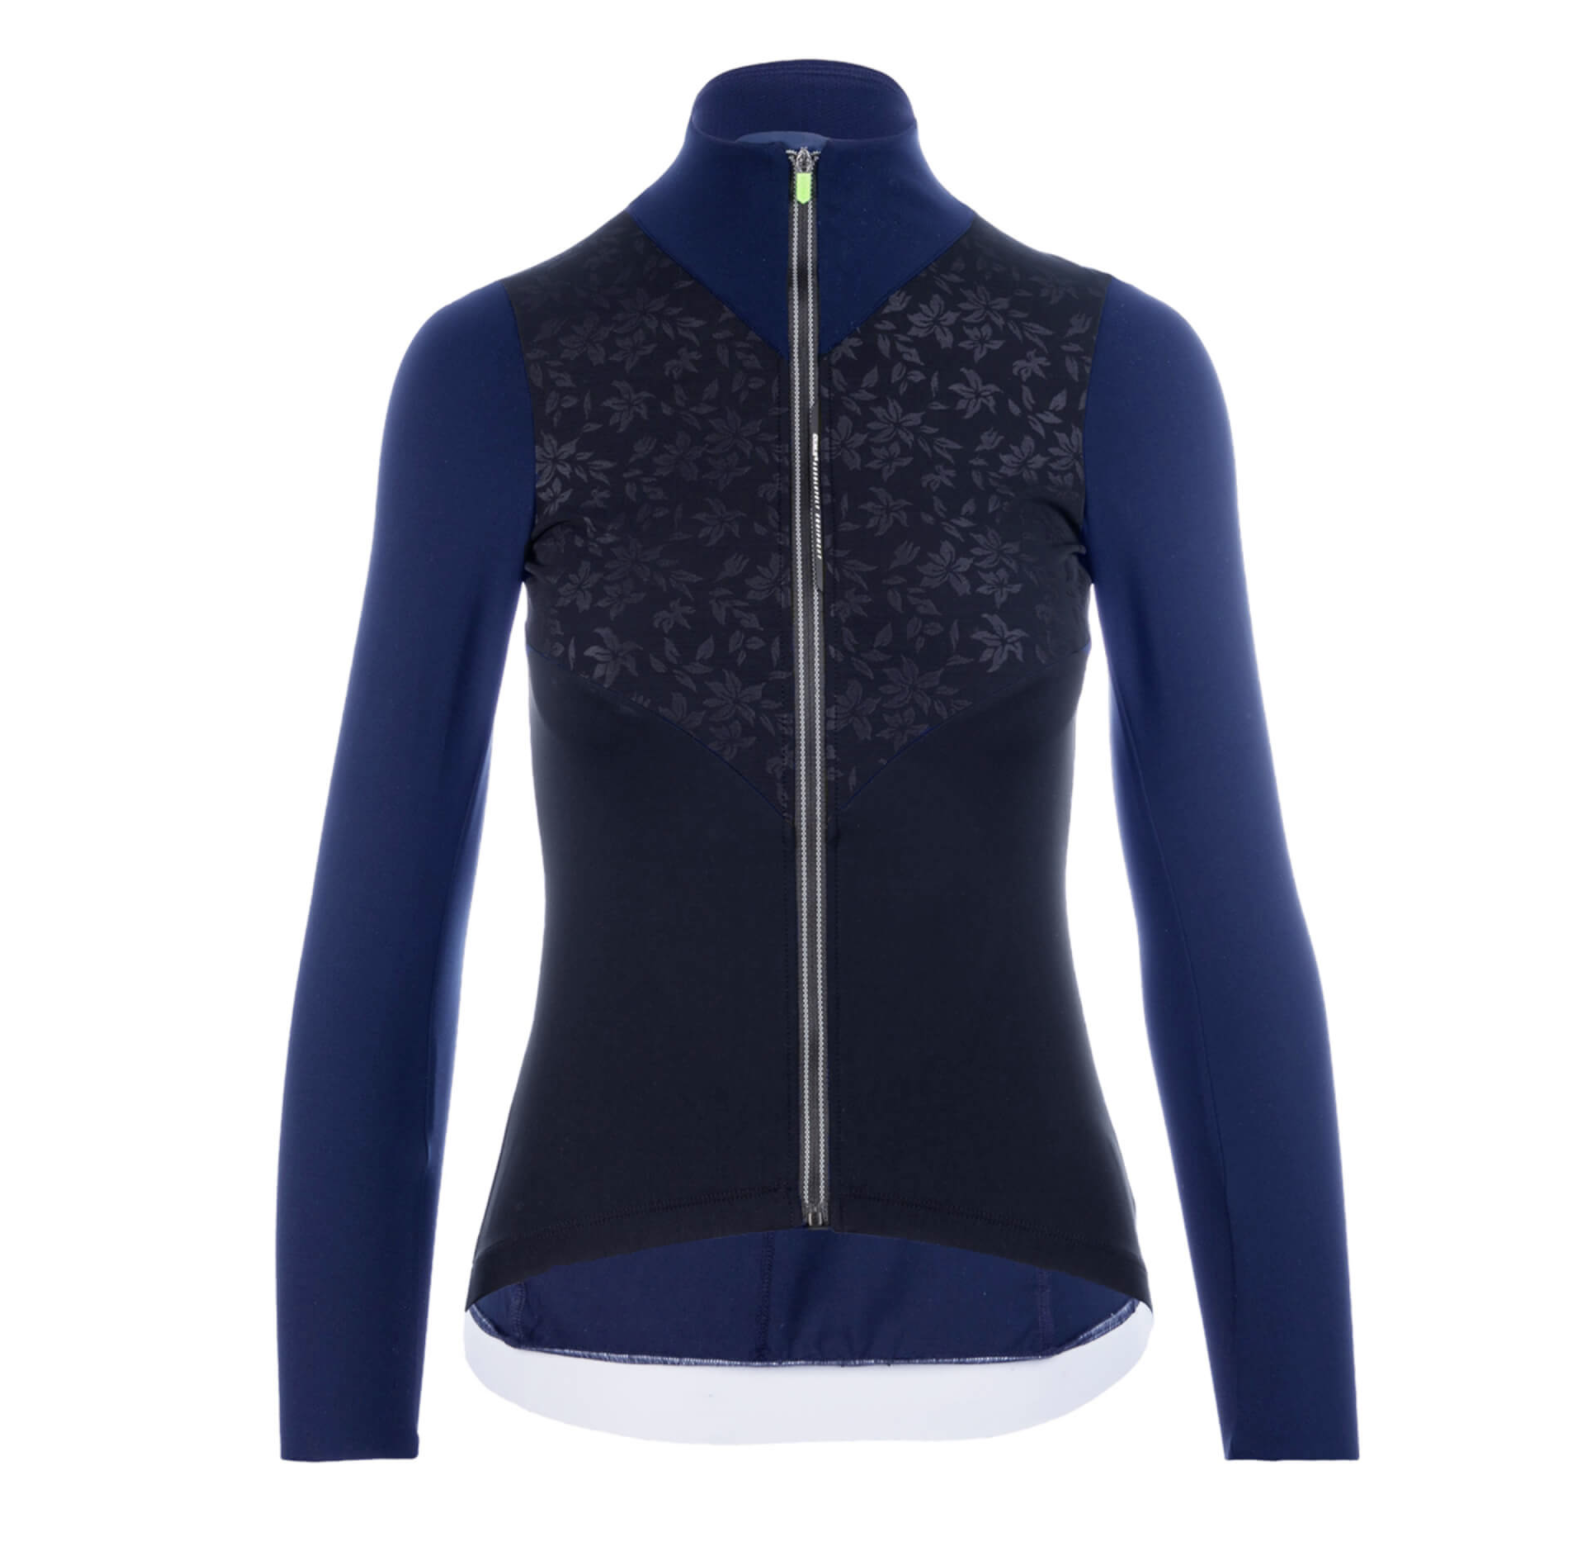 Q36.5 WOMENS JERSEY LONG SLEEVE NAVY LACE - CHAINSMITH BIKE SHOP